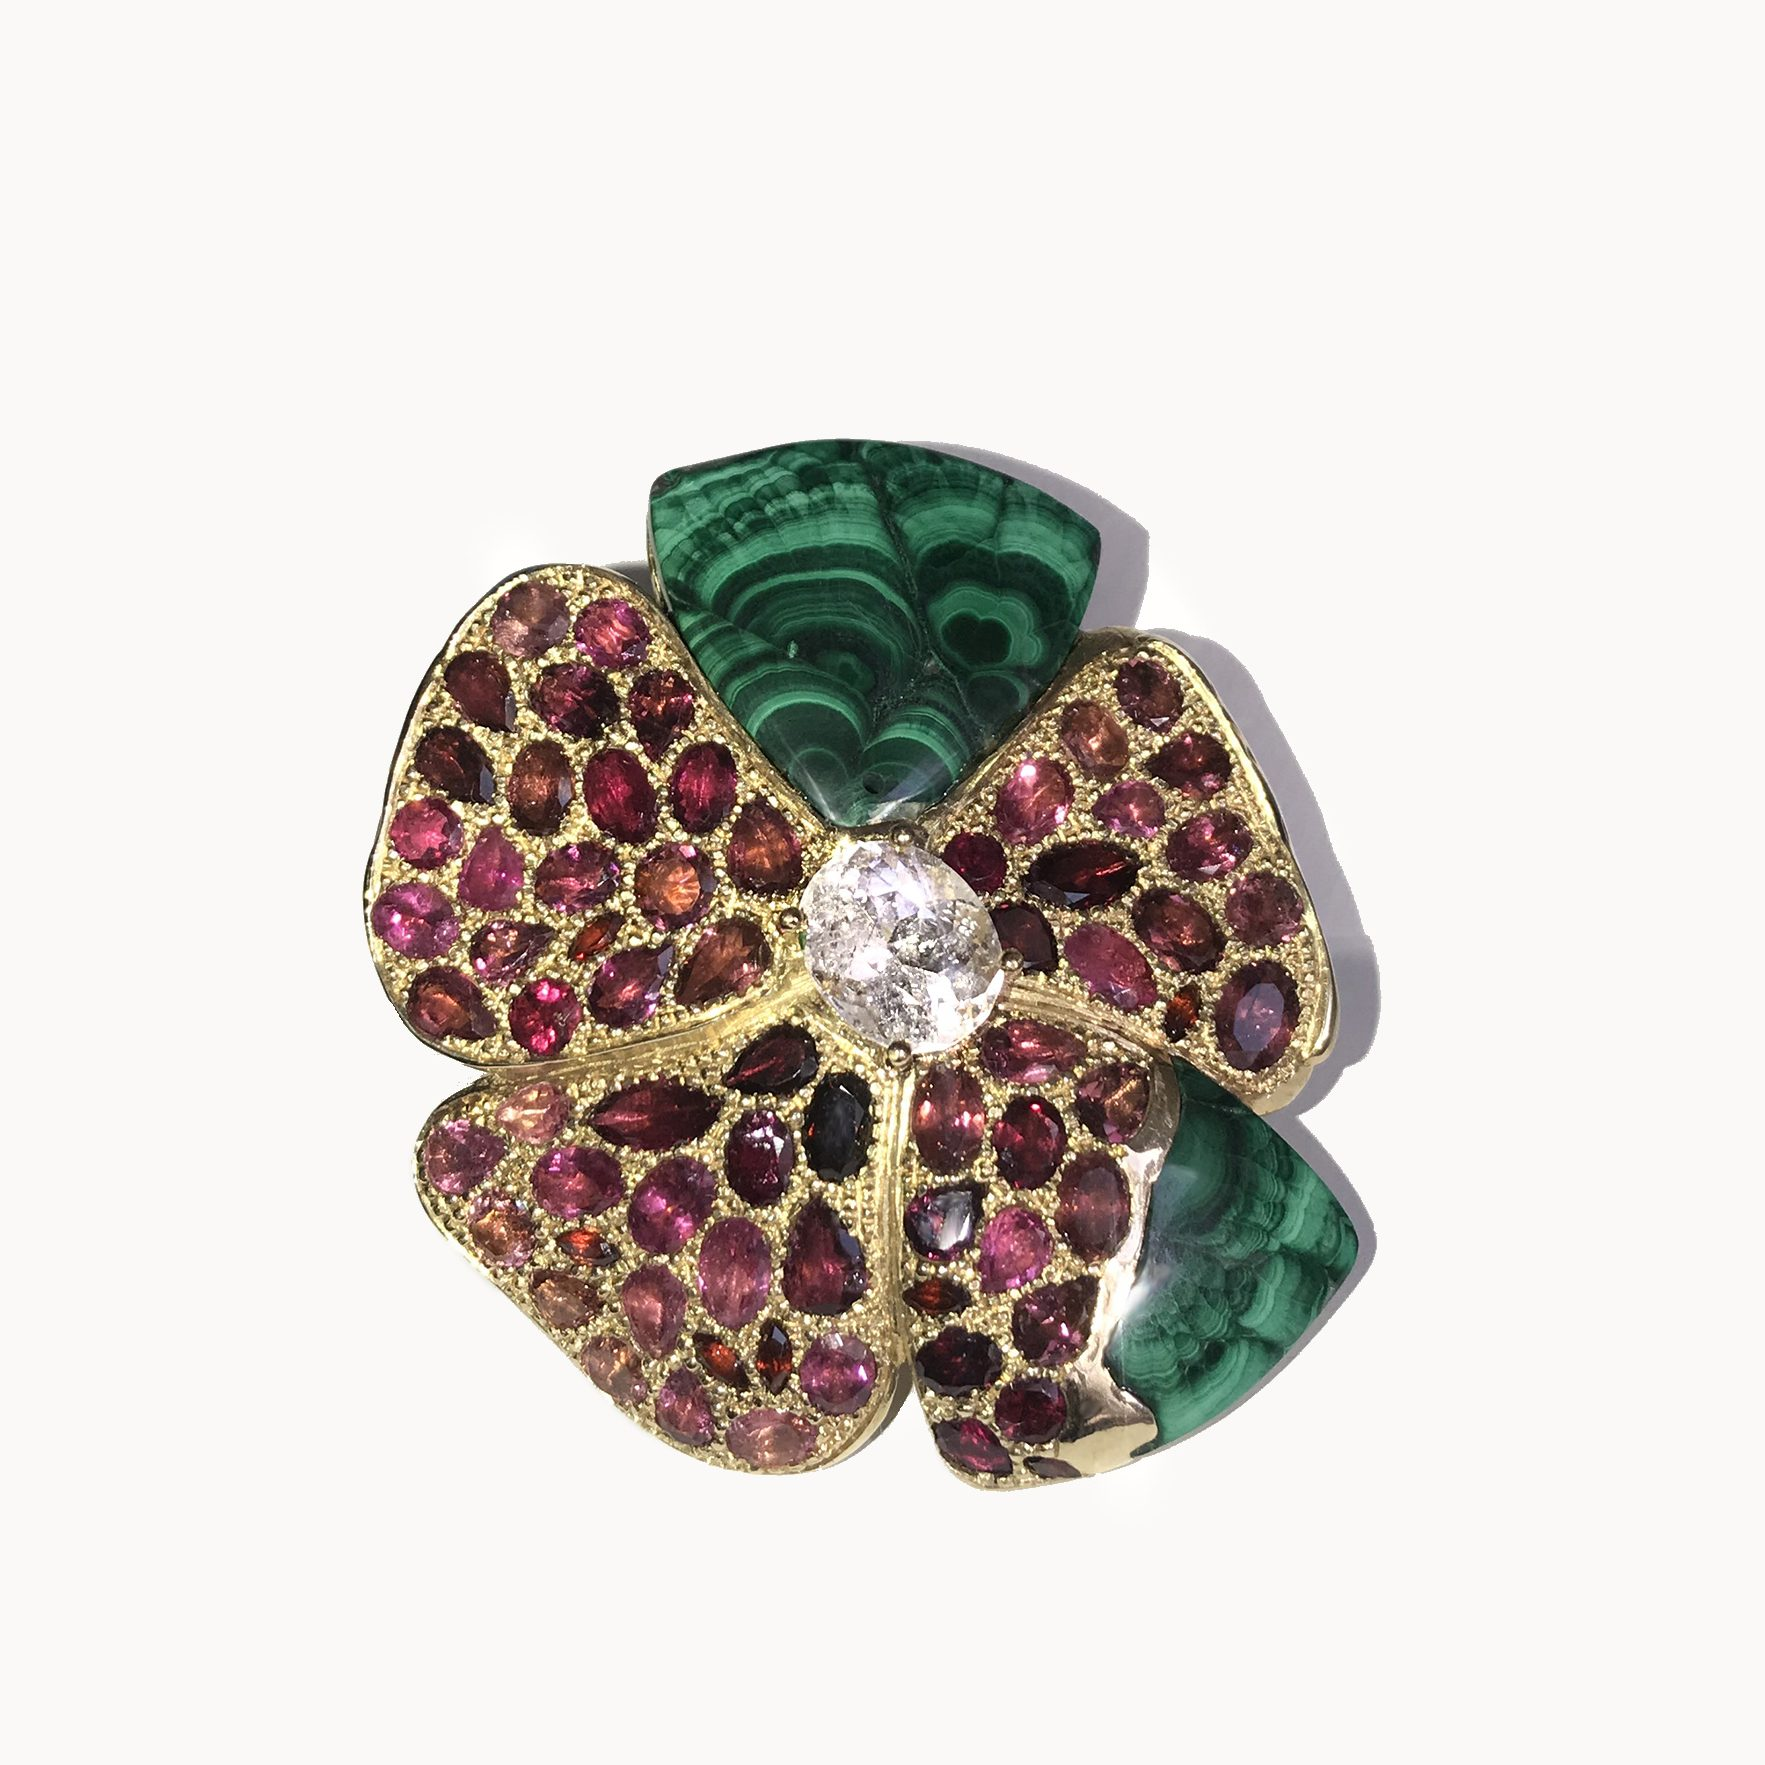 The Tudor Rose Brooch